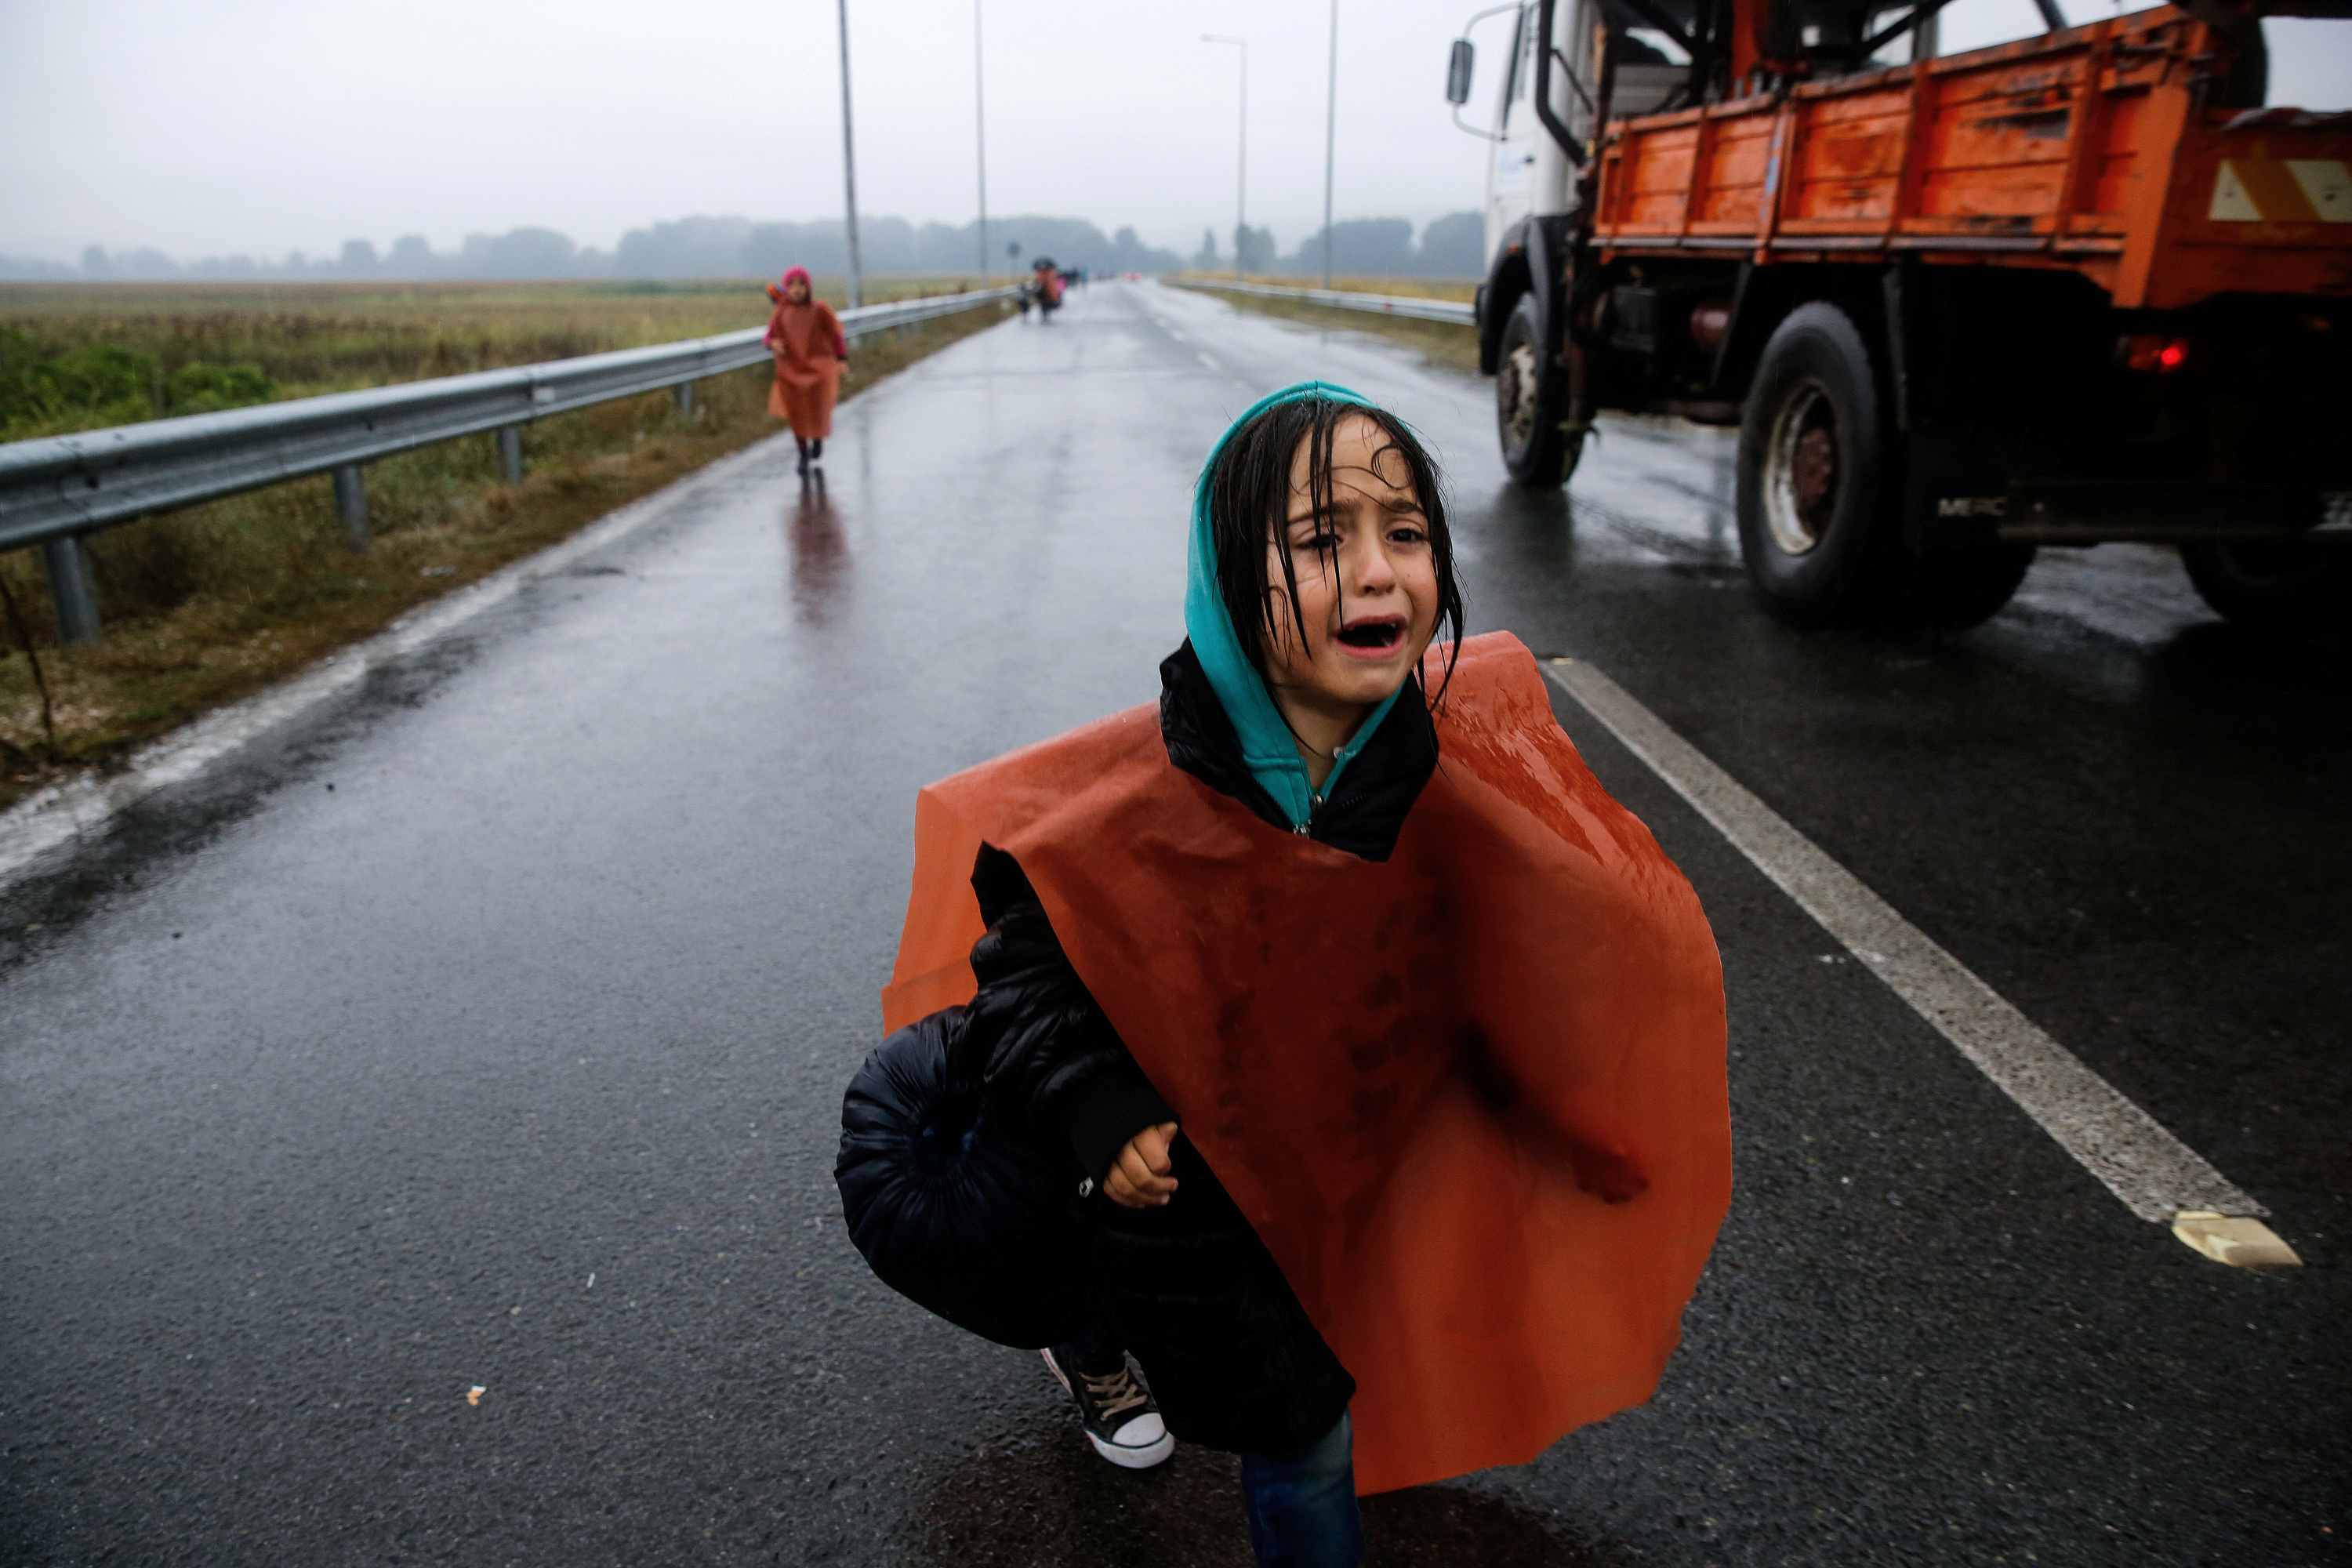 The enormous cost of toxic stress: Repairing damage to refugee and